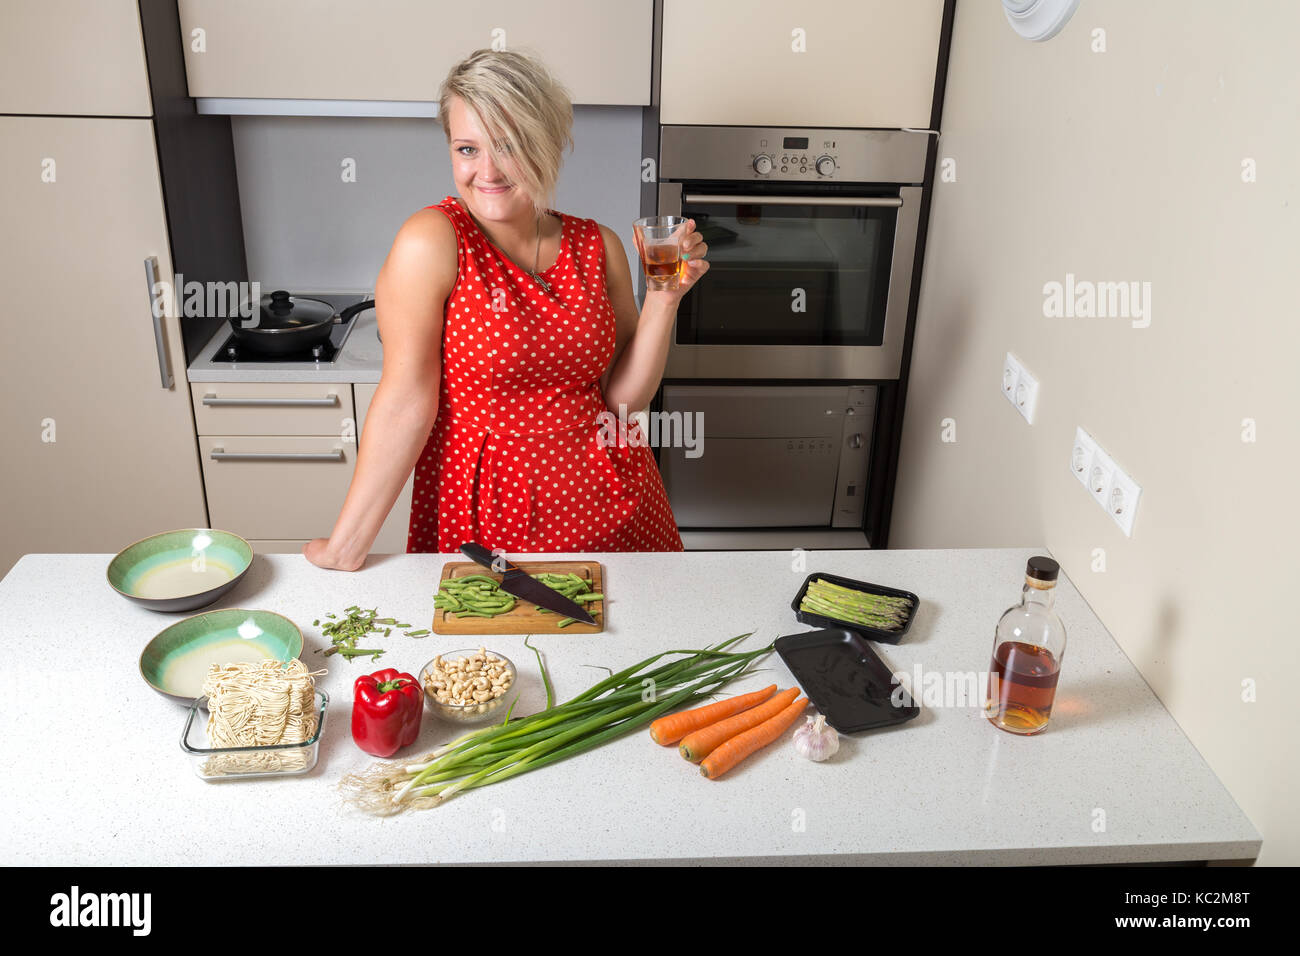 Adult girl holding whiskey glass in hand and smiling Stock Photo